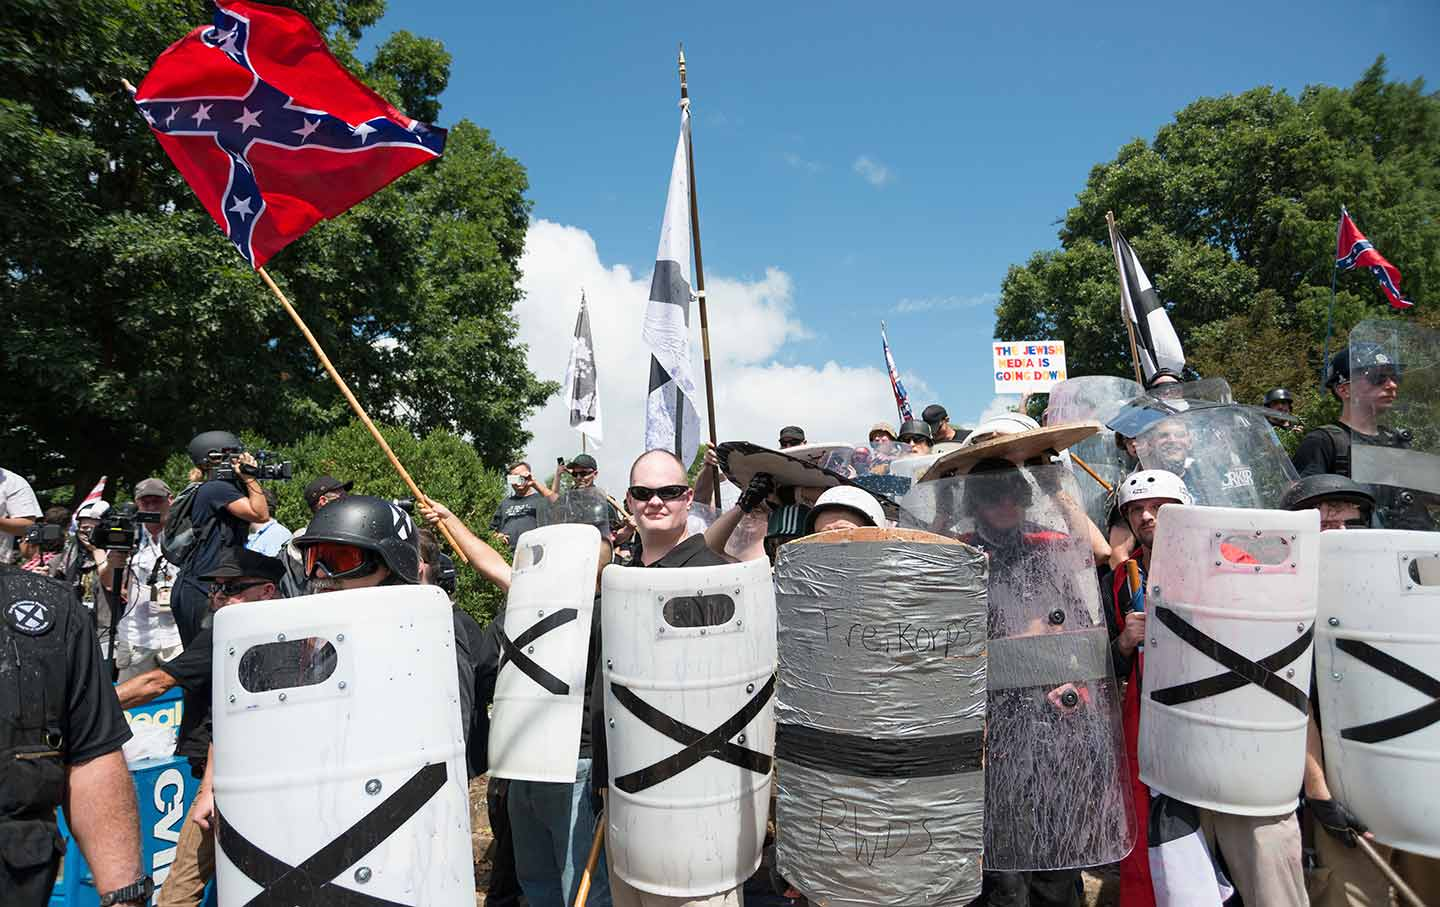 White Supremacists in Charlottesville